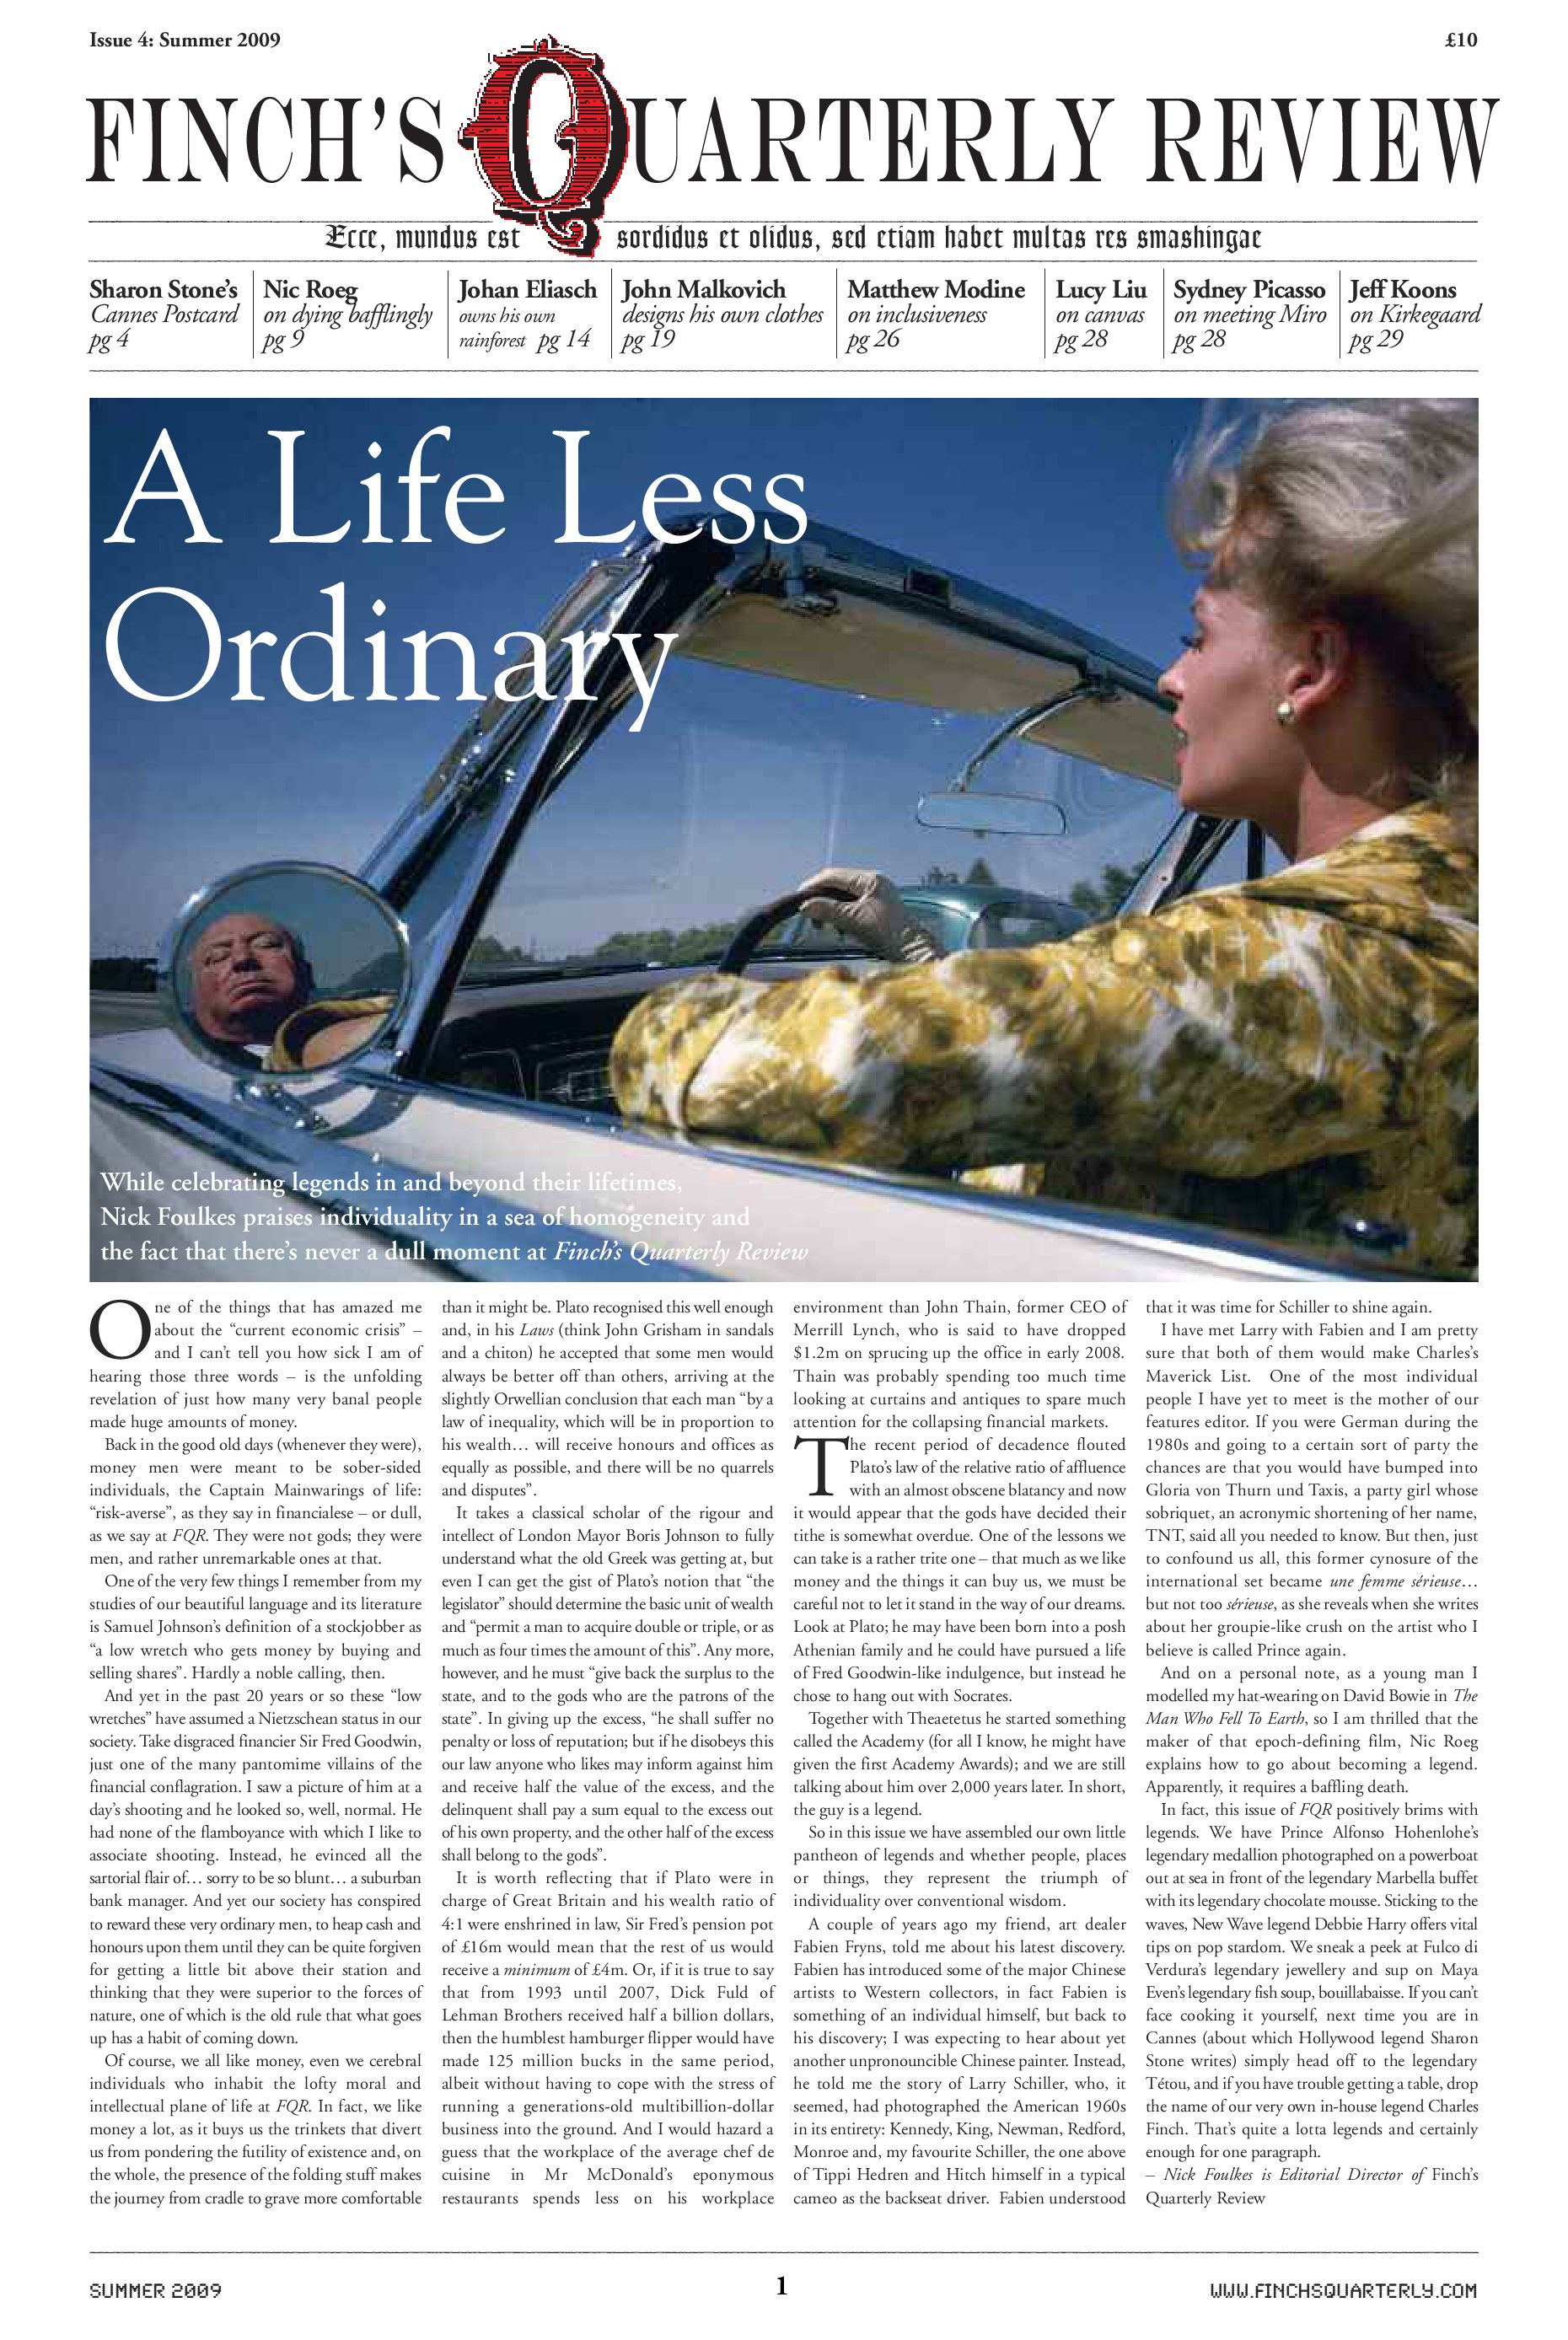 Finch\'s Quarterly Review Issue 4 by Tristram Fetherstonhaugh - issuu